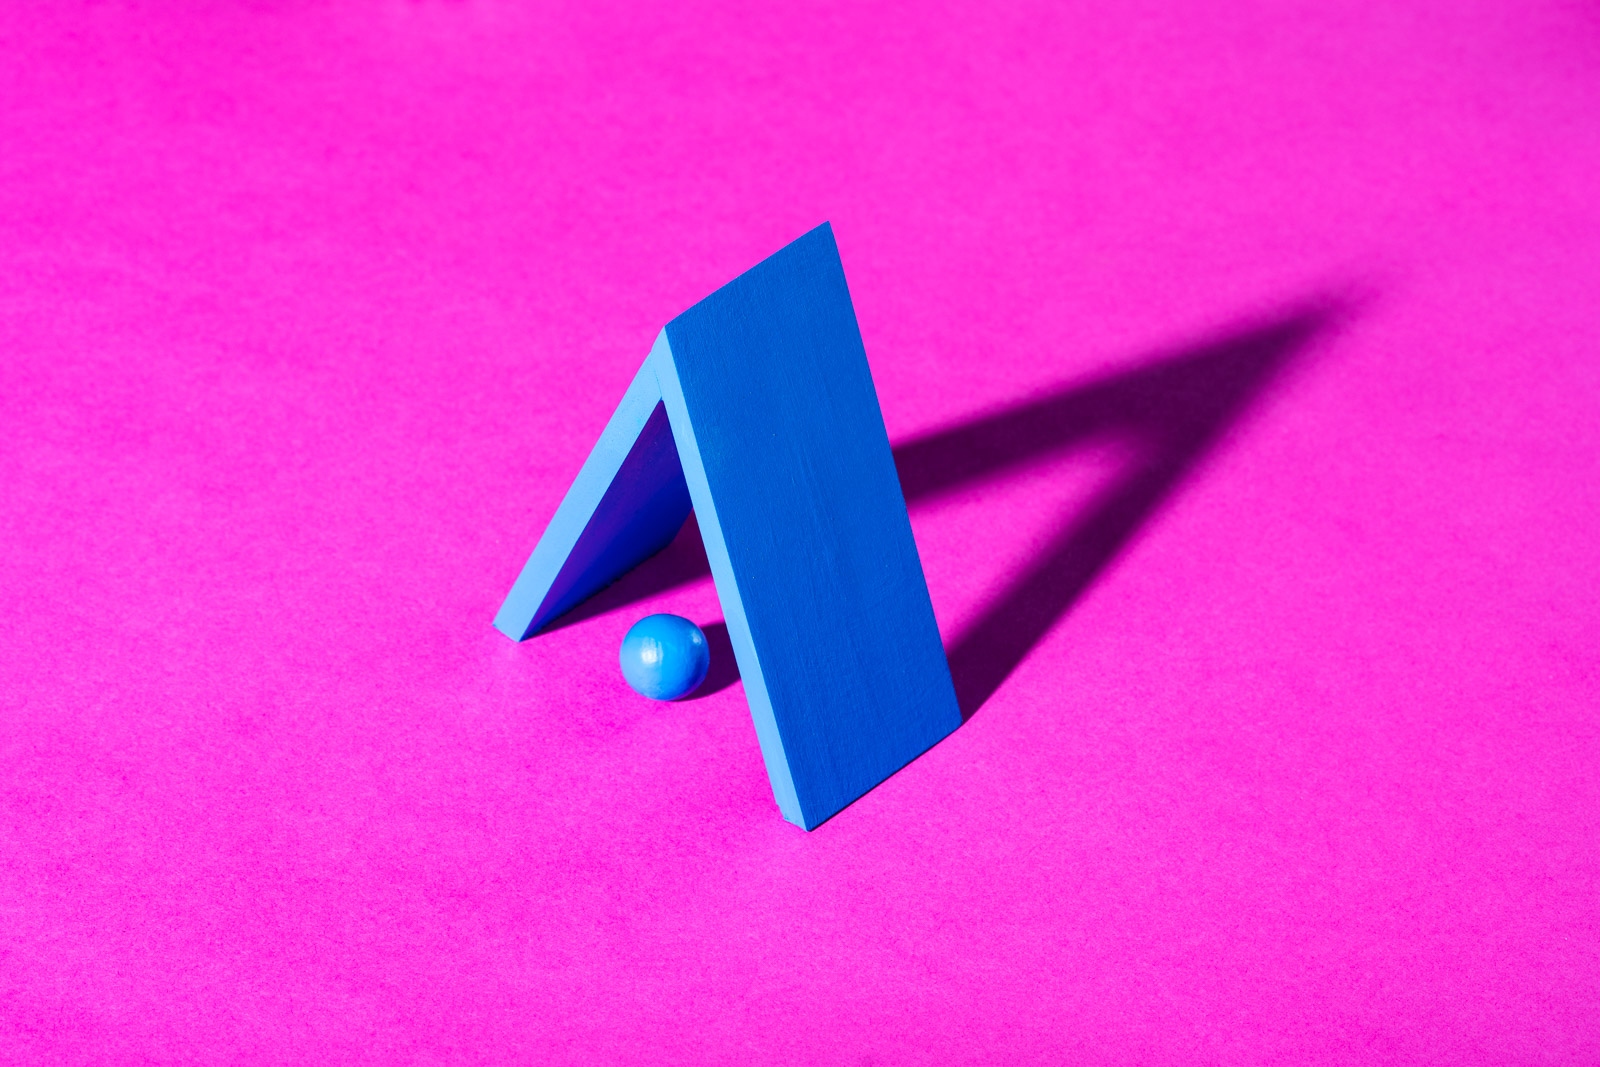 Blue recreation of the Nutrafol logo on hot pink paper. Nutrafol hair loss product photography by Reciprocity Studio photographers in Burlington, Vermont.